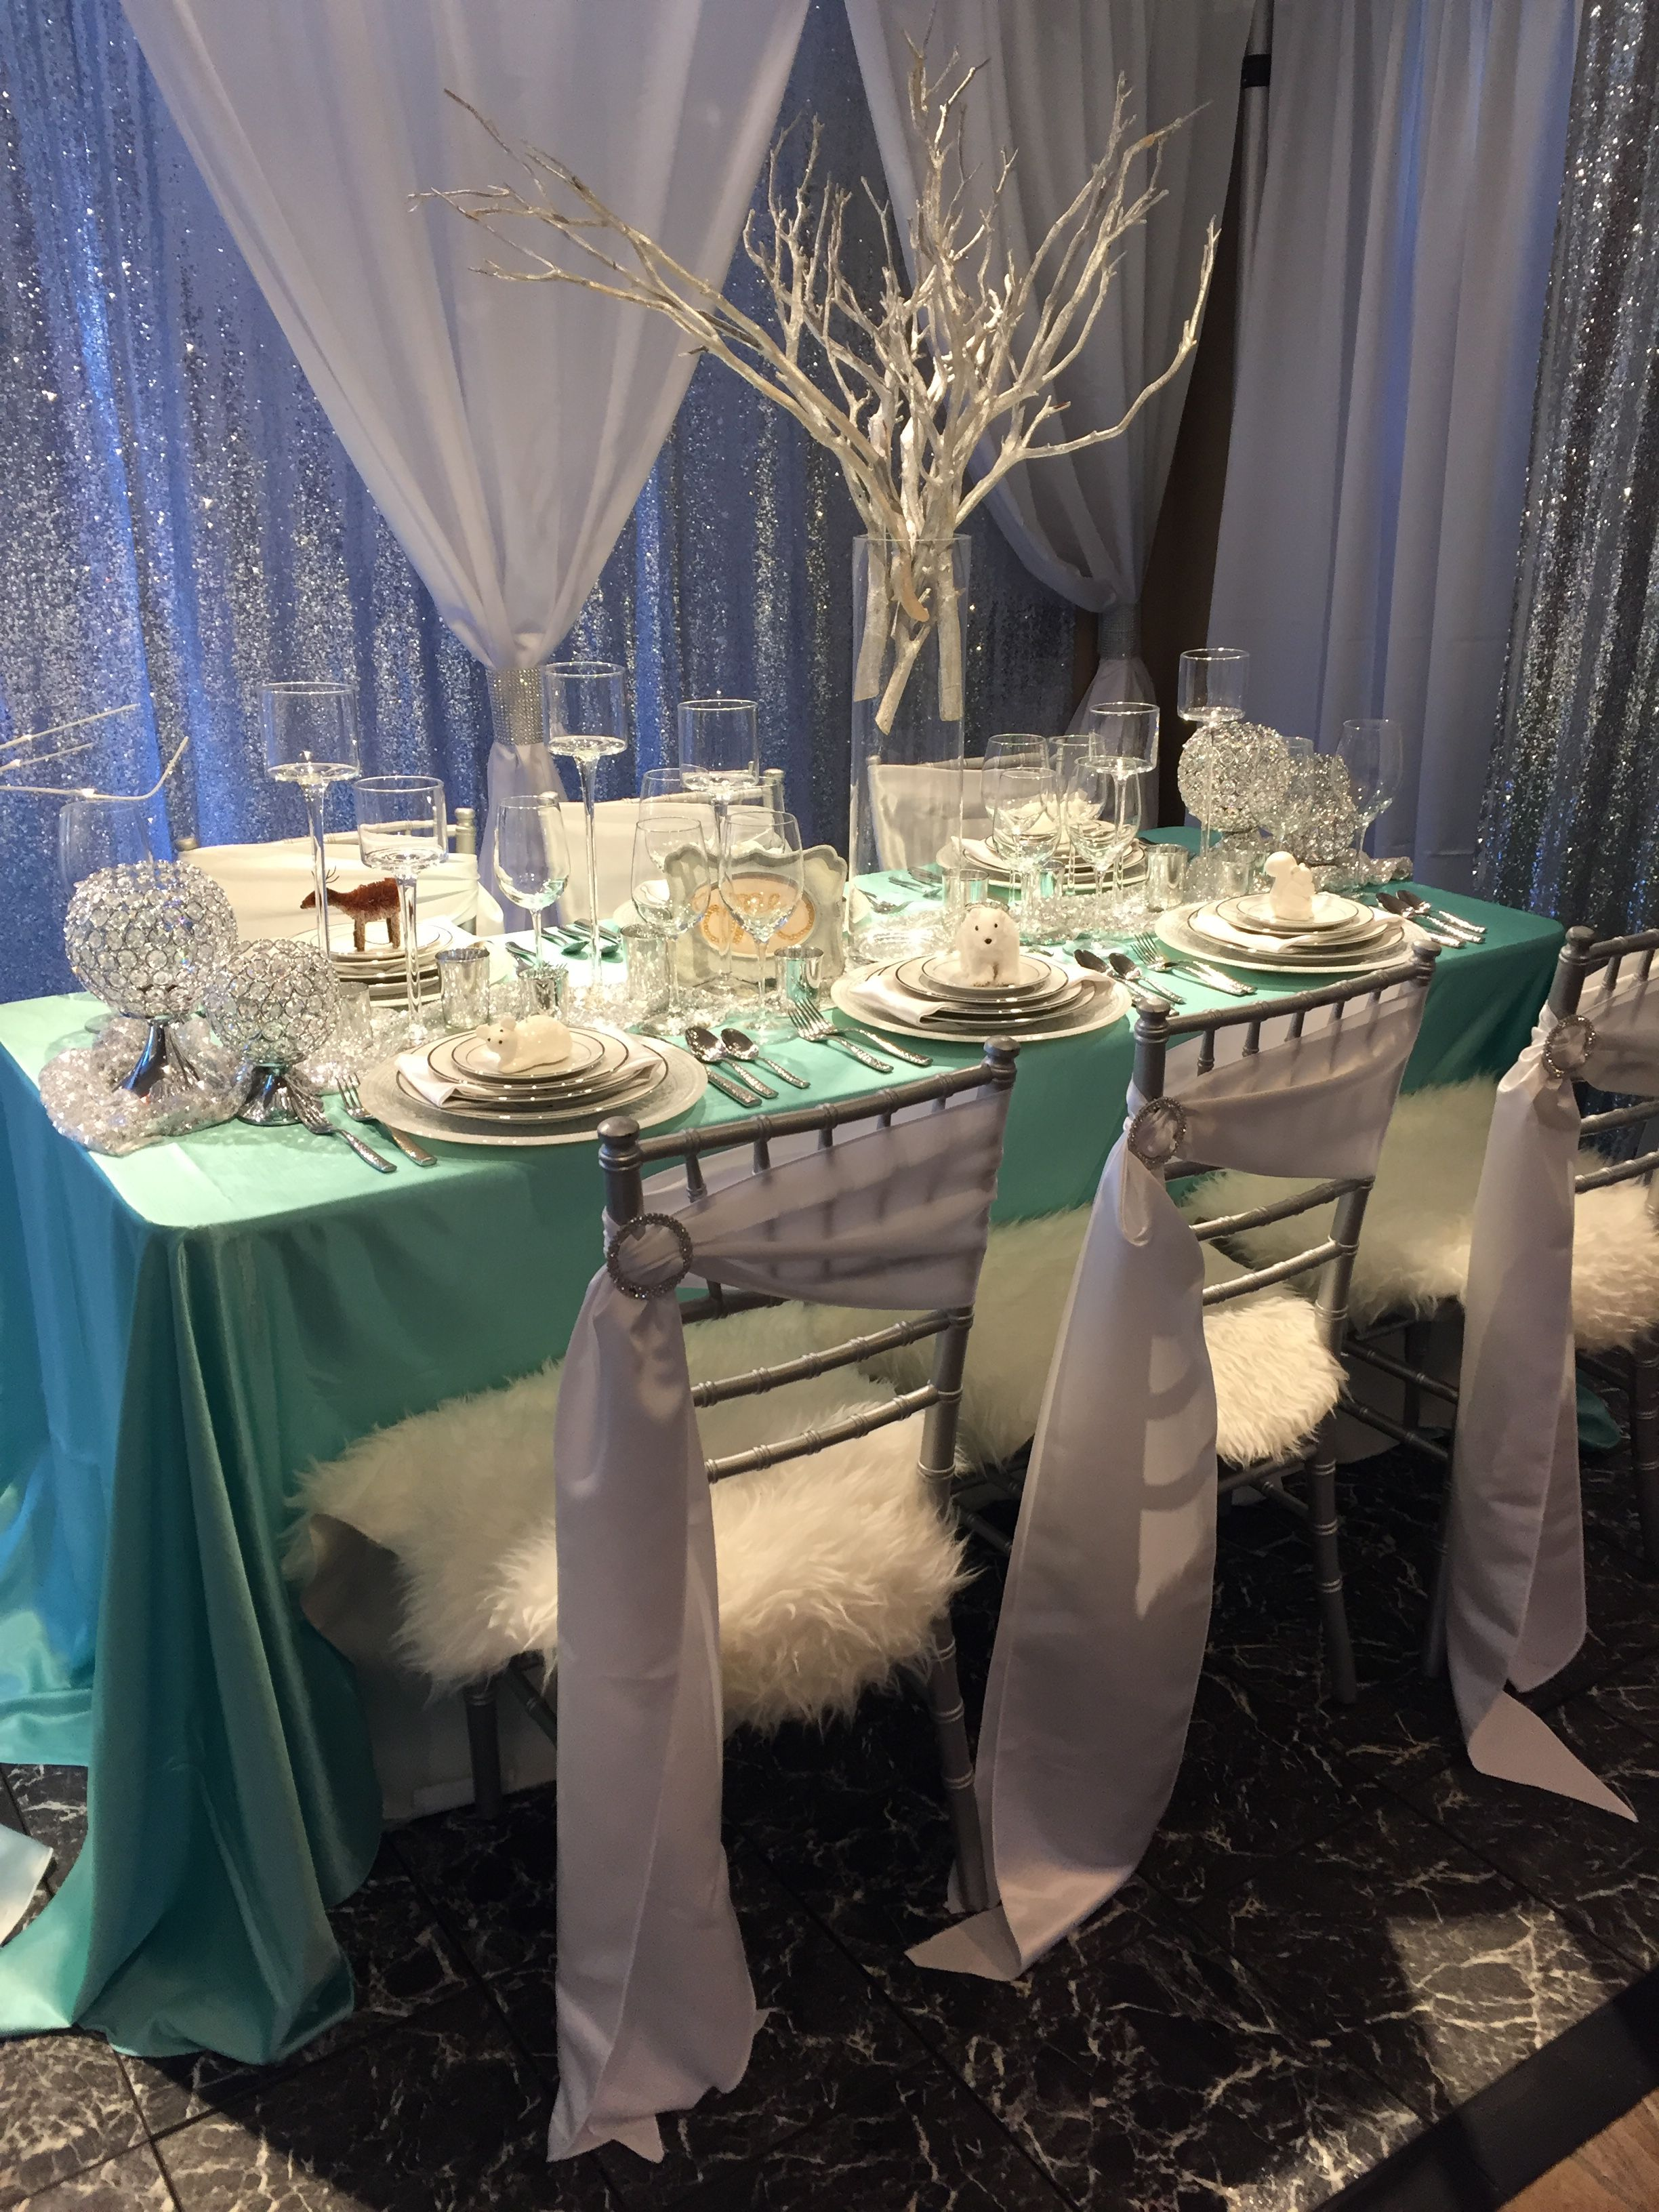 Wedding decorations garden december 2018 Our icedistrictinspired wedding table at SEREvents showcase of